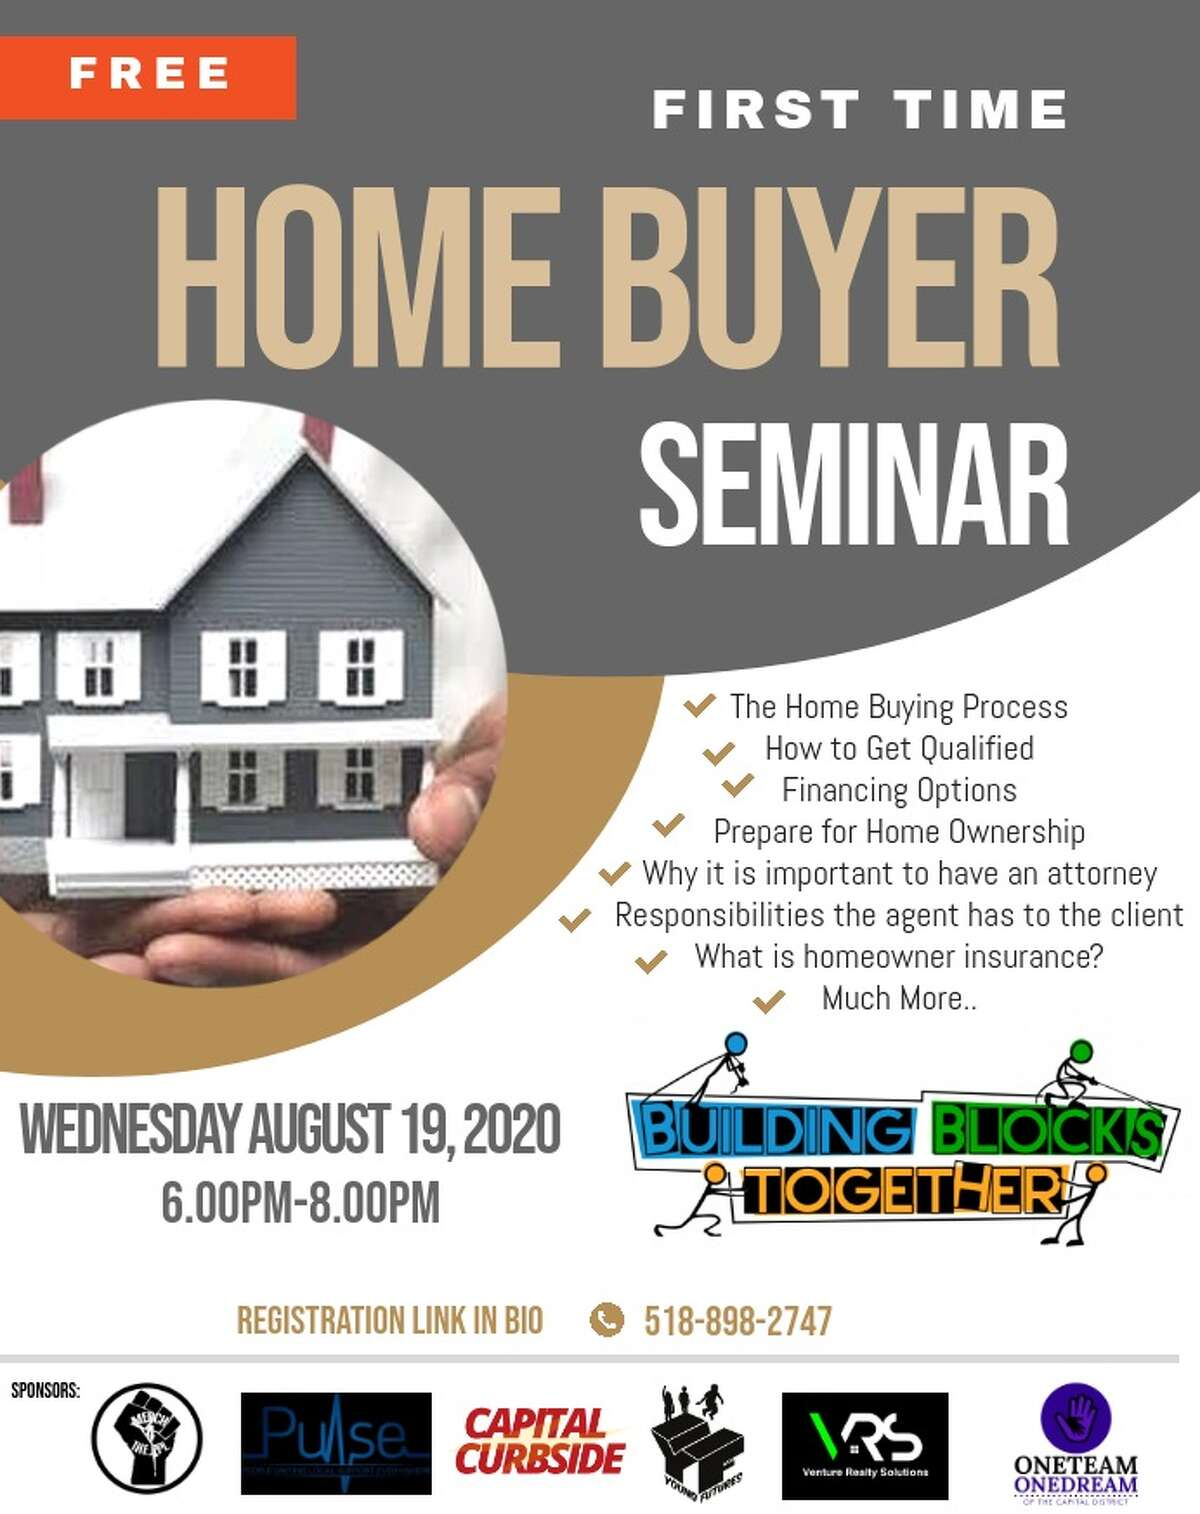 Virginia Rawlins of Building Blocks Together will host an Aug. 19 seminar for those looking to buy their first house.